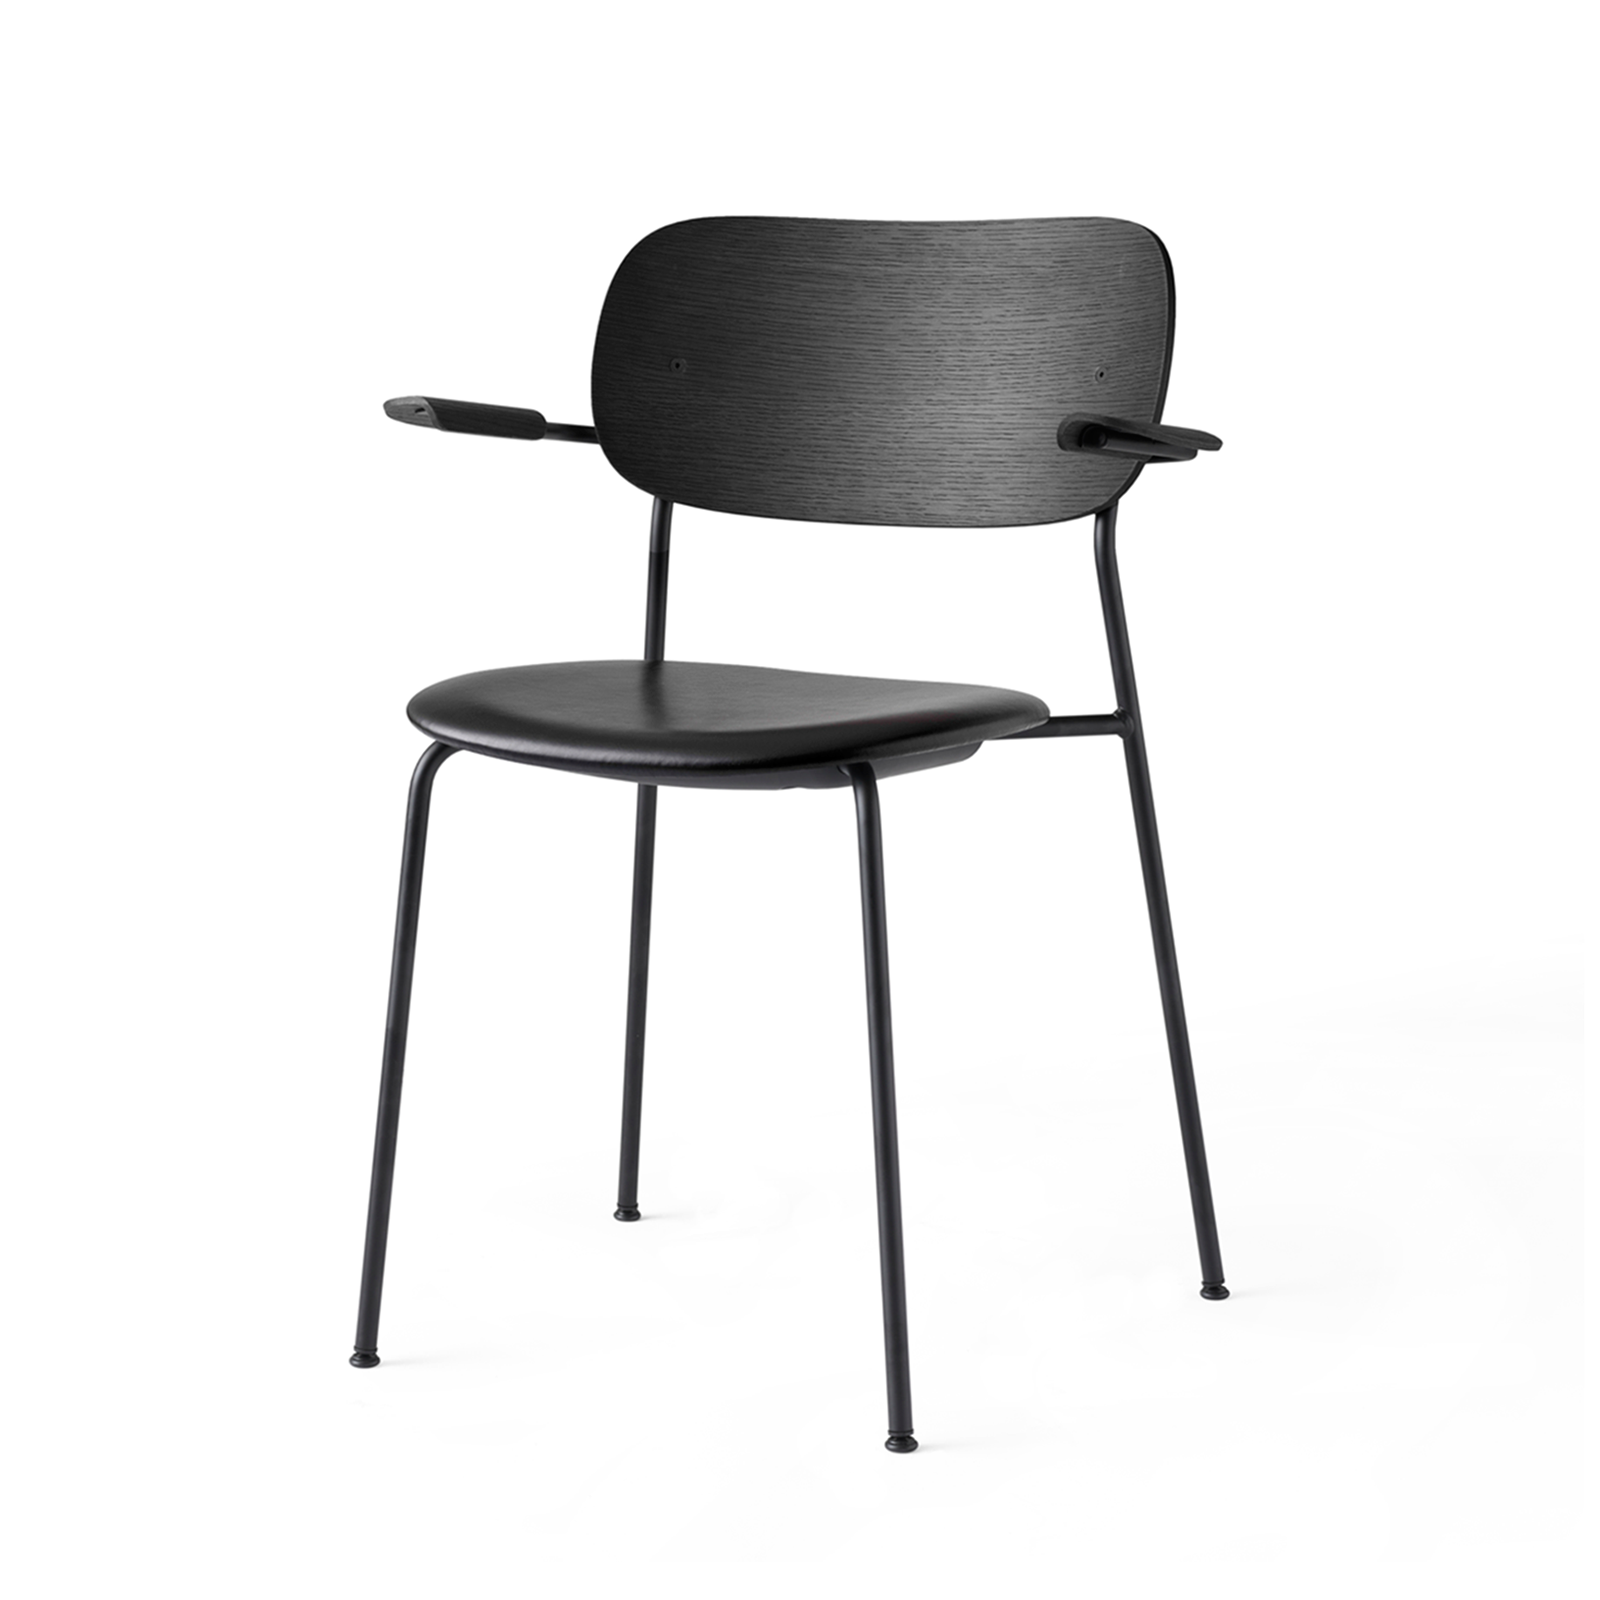 Menu Co Armchair Chair with Leather Seat 柯爾系列 扶手椅 - 皮革坐墊